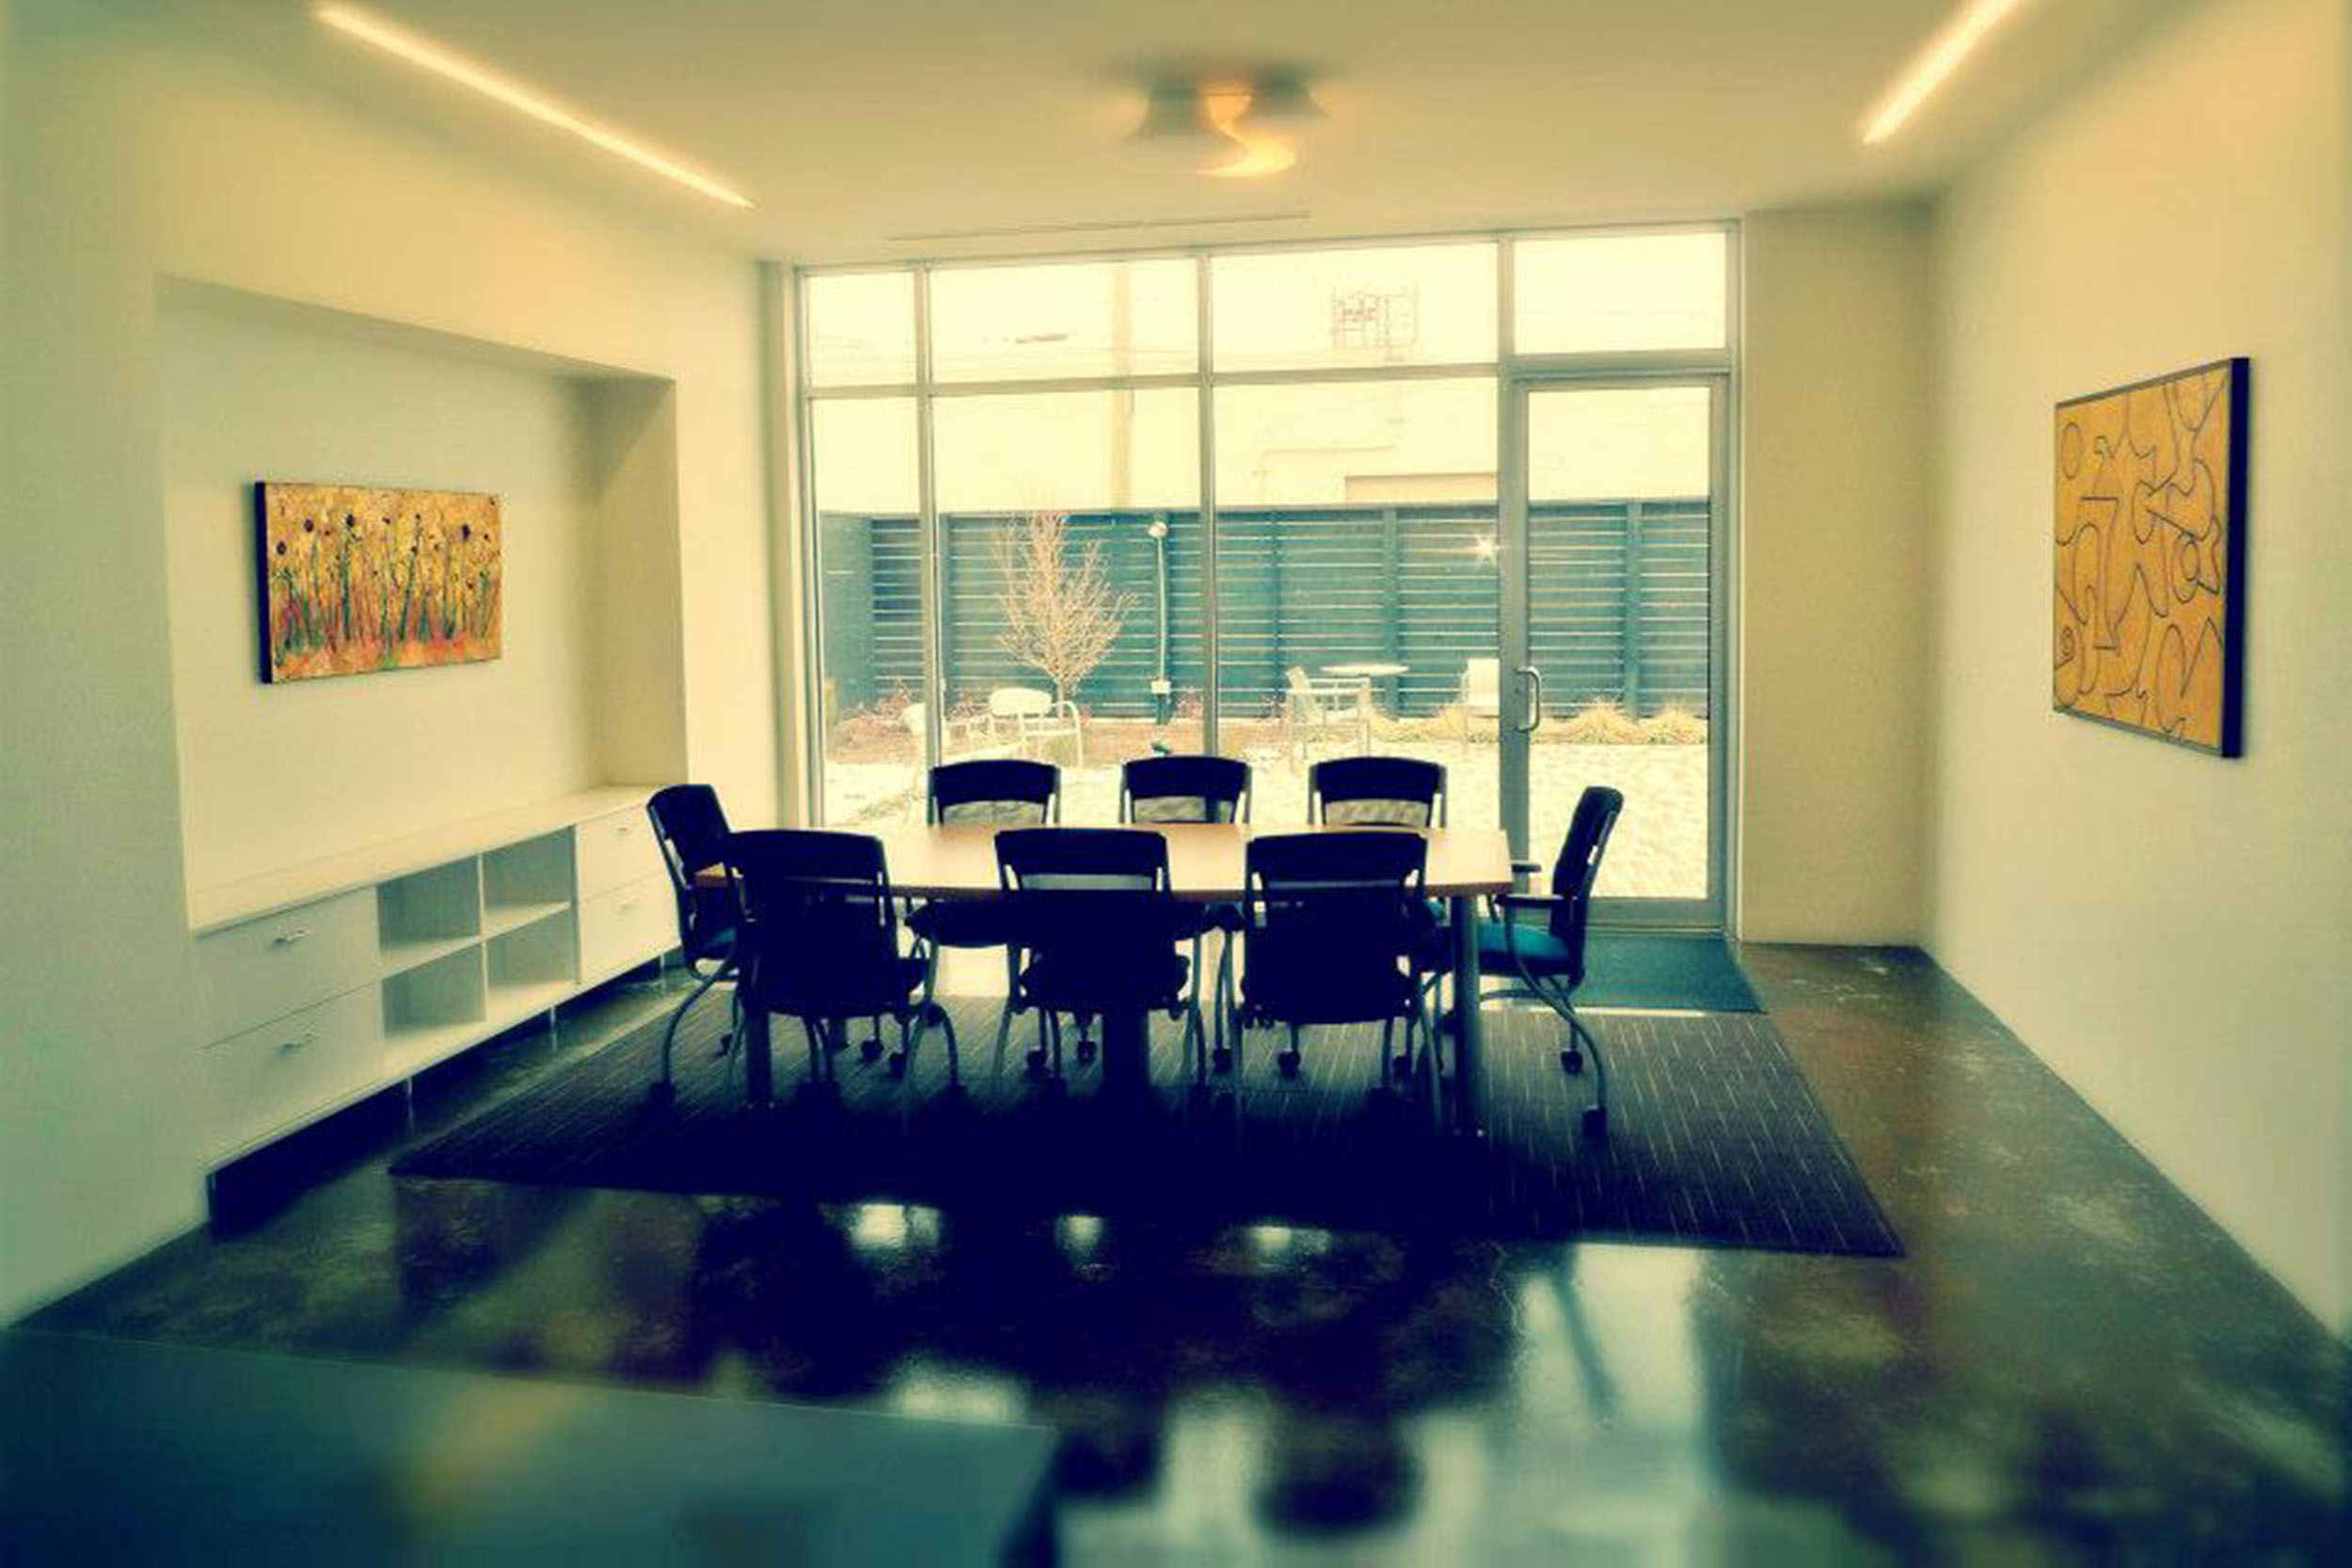 Conference room contemporary artwork by Taylor Smith.jpg